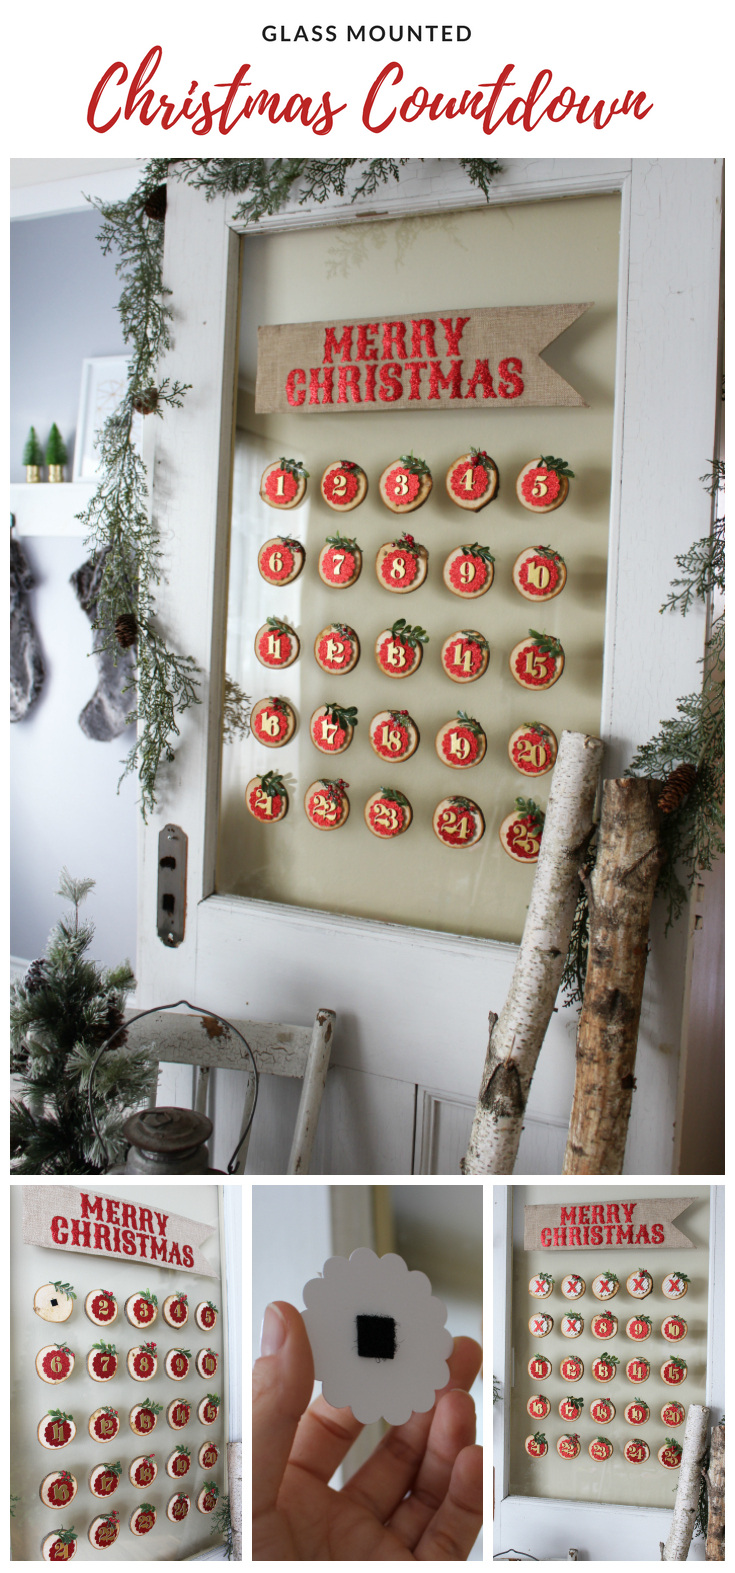 Pretty Christmas advent calendar on glass